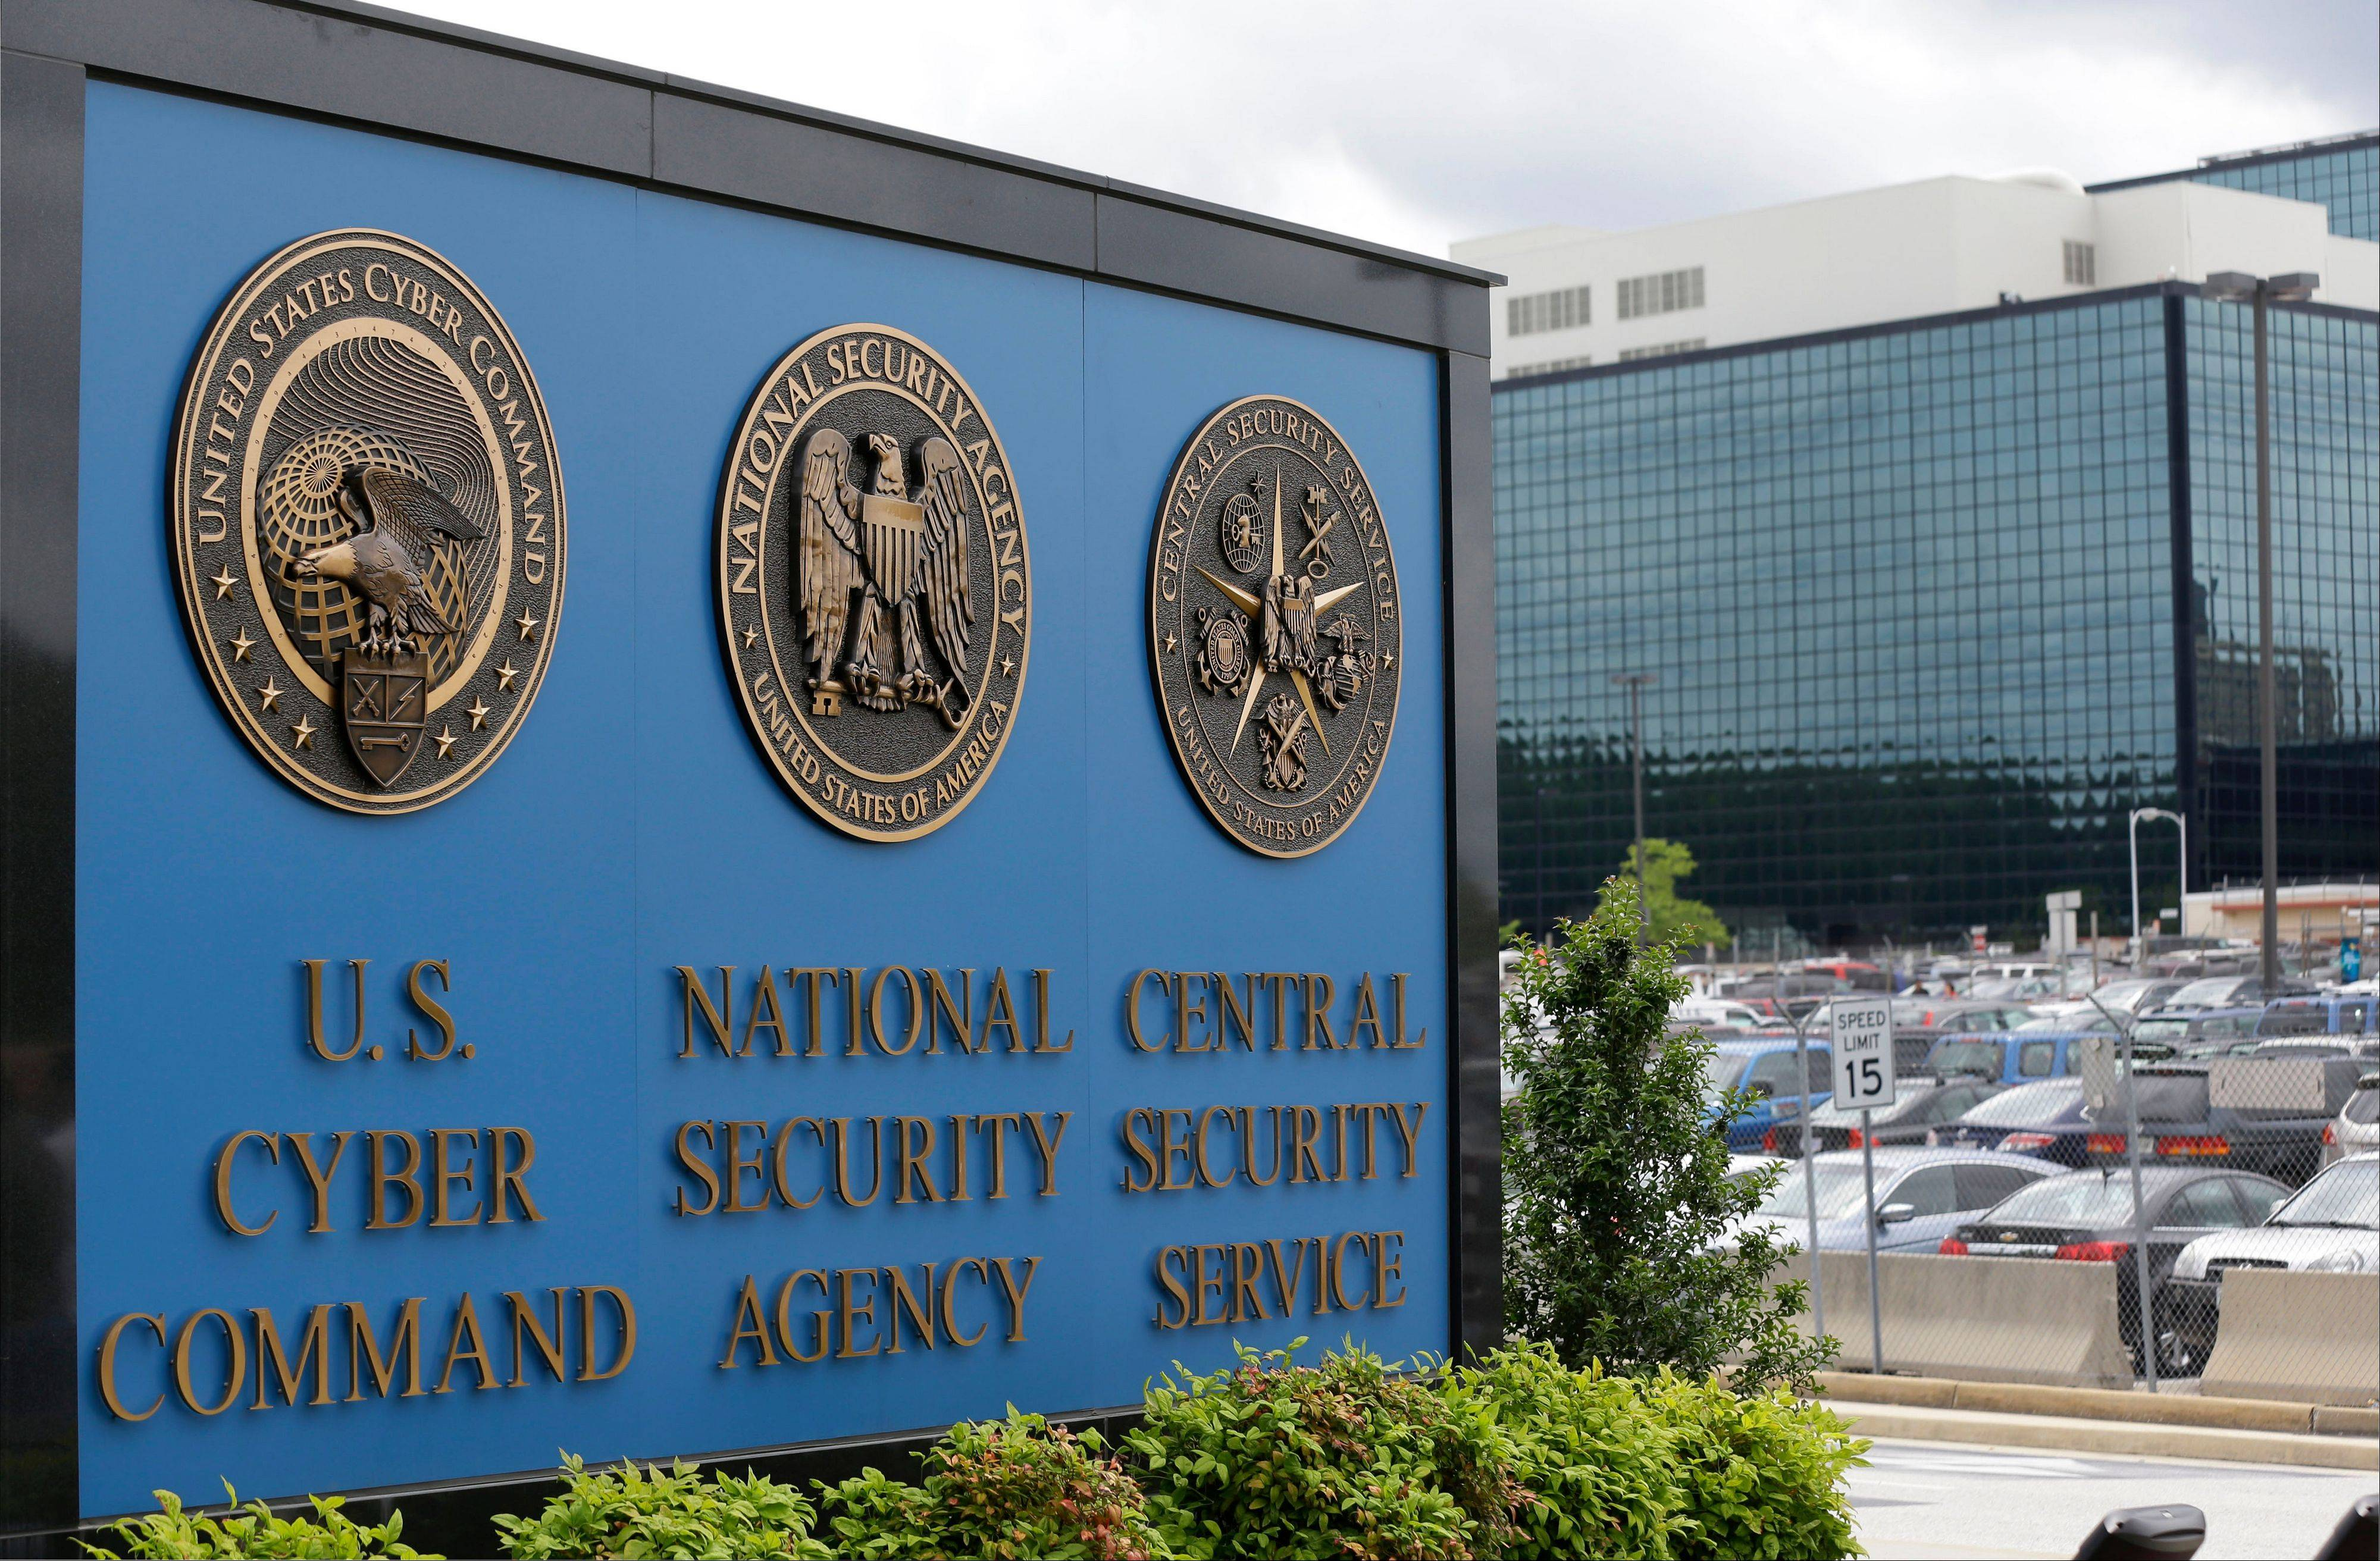 Associated PressA sharply divided government task force that reviewed the National Security Agency's surveillance program for four months has urged President Barack Obama to shut down the agency's bulk collection of phone data and purge its massive inventory of millions of Americans' calling records, The Associated Press has learned.